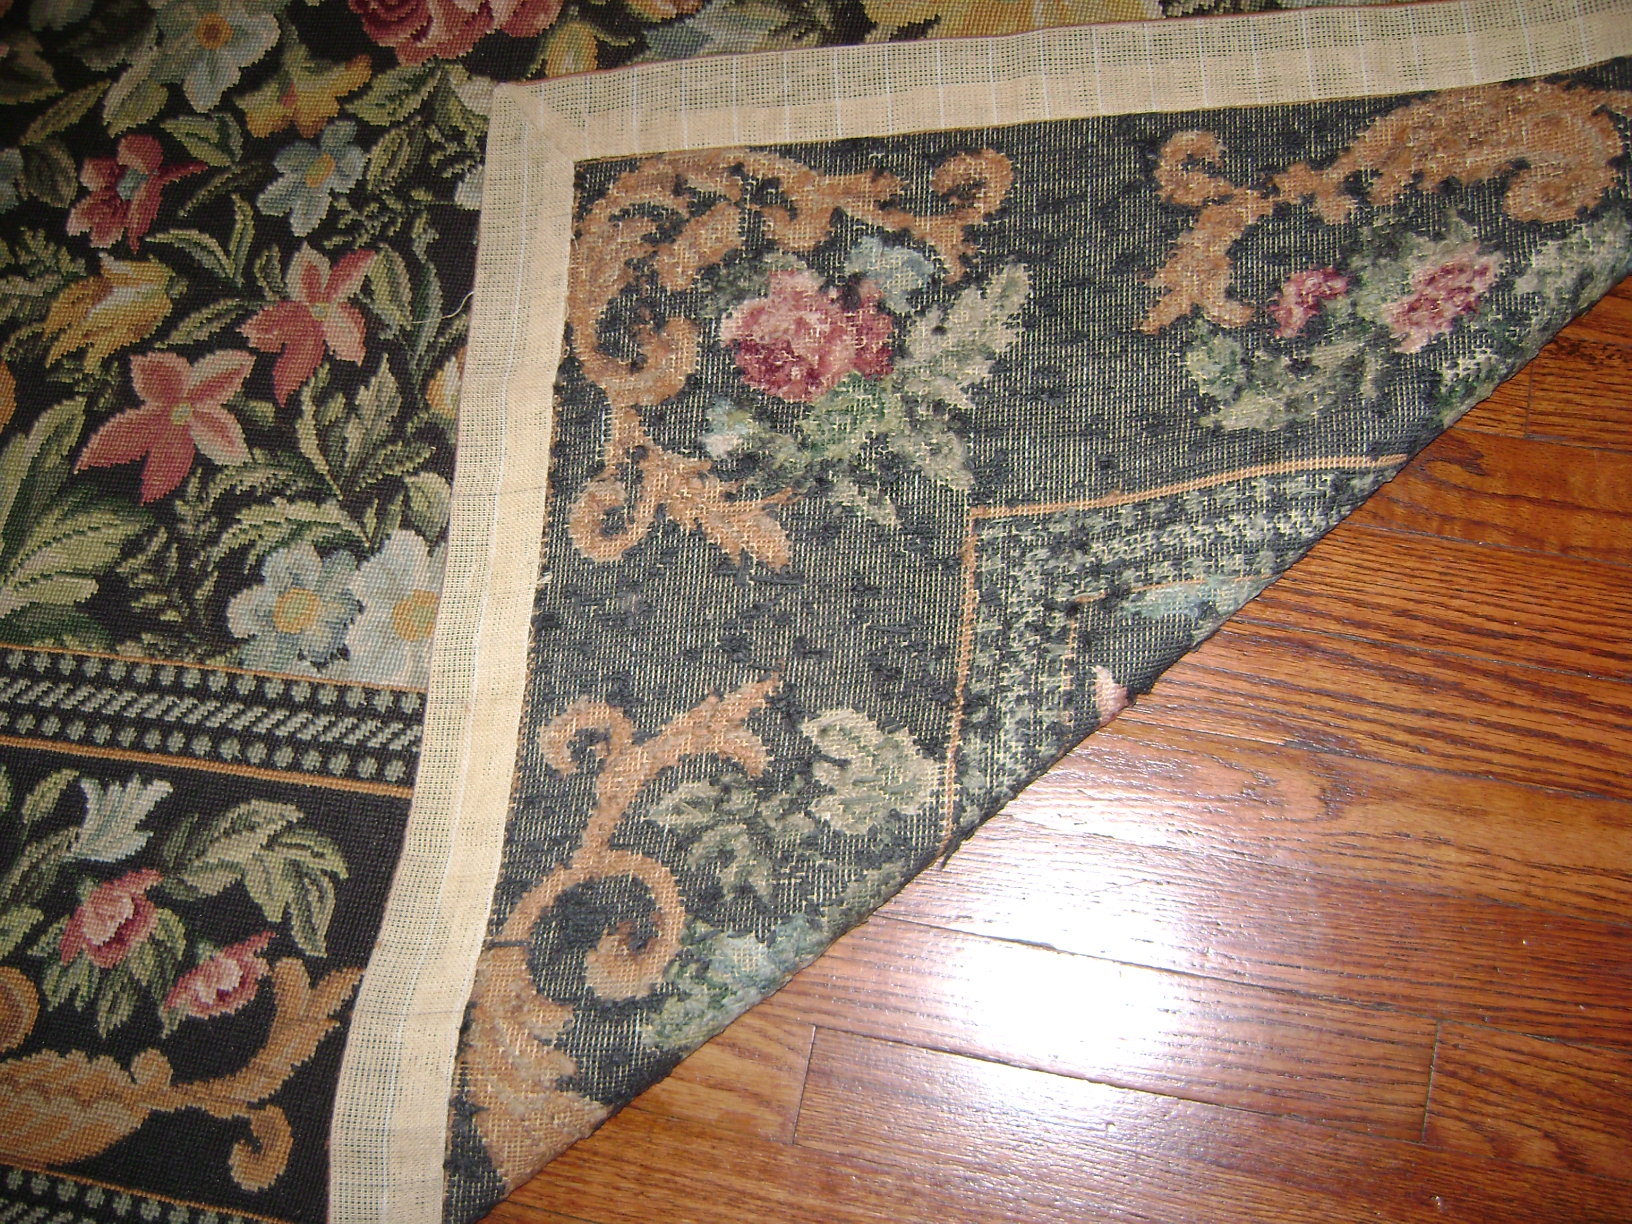 I Purchased A Beautiful Handmade Floral Needlepoint Rug 8x10